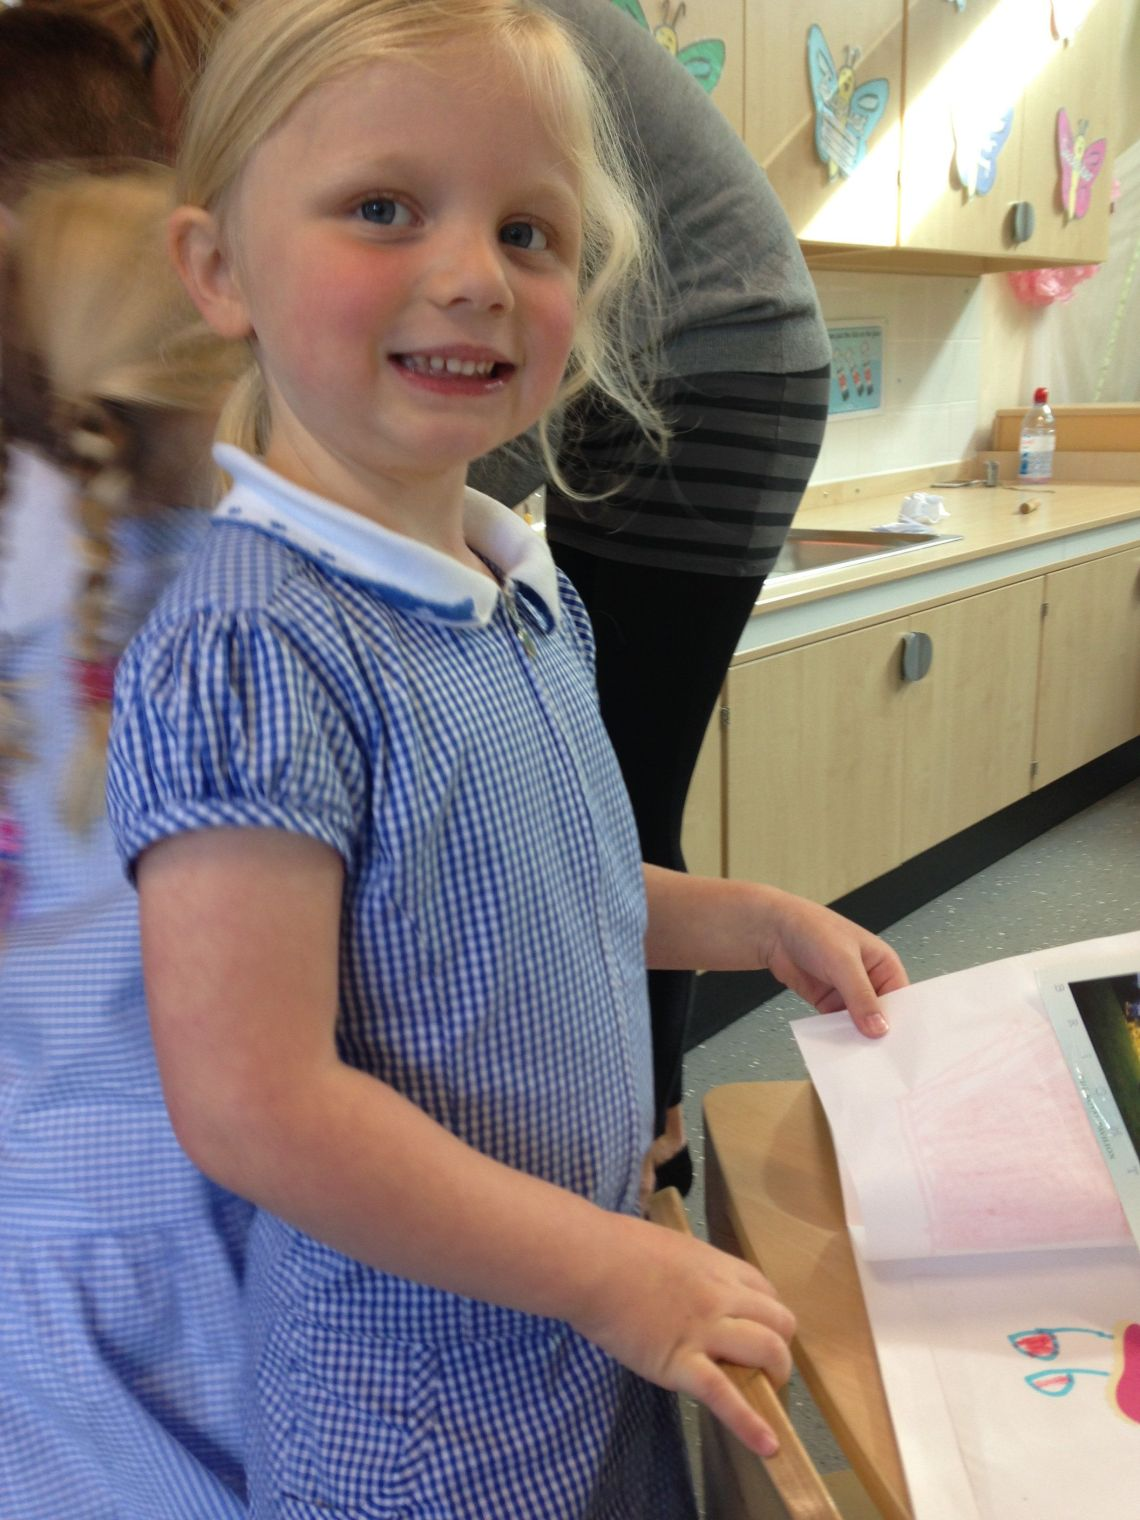 Recently, Amelia Lavelle, saw a volcano erupt in the school playground, but she wasn't going to entertain her mum with that story.